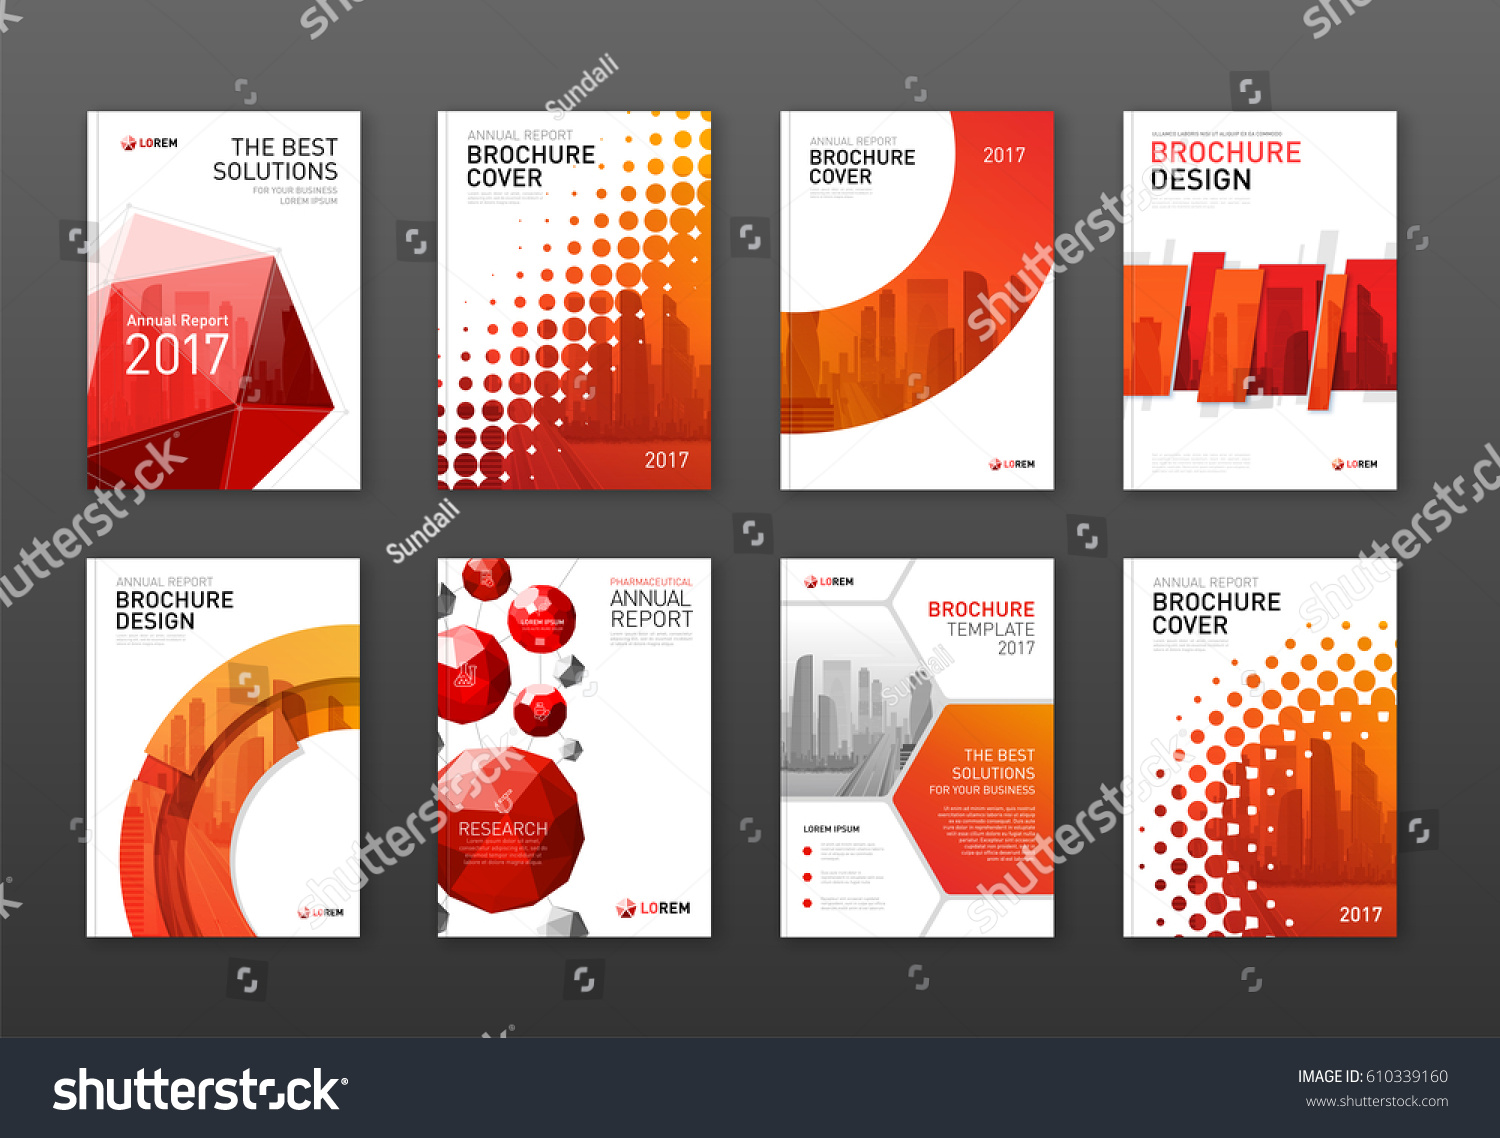 cool brochure templates - good flyer design cool and attractive flyer designs for